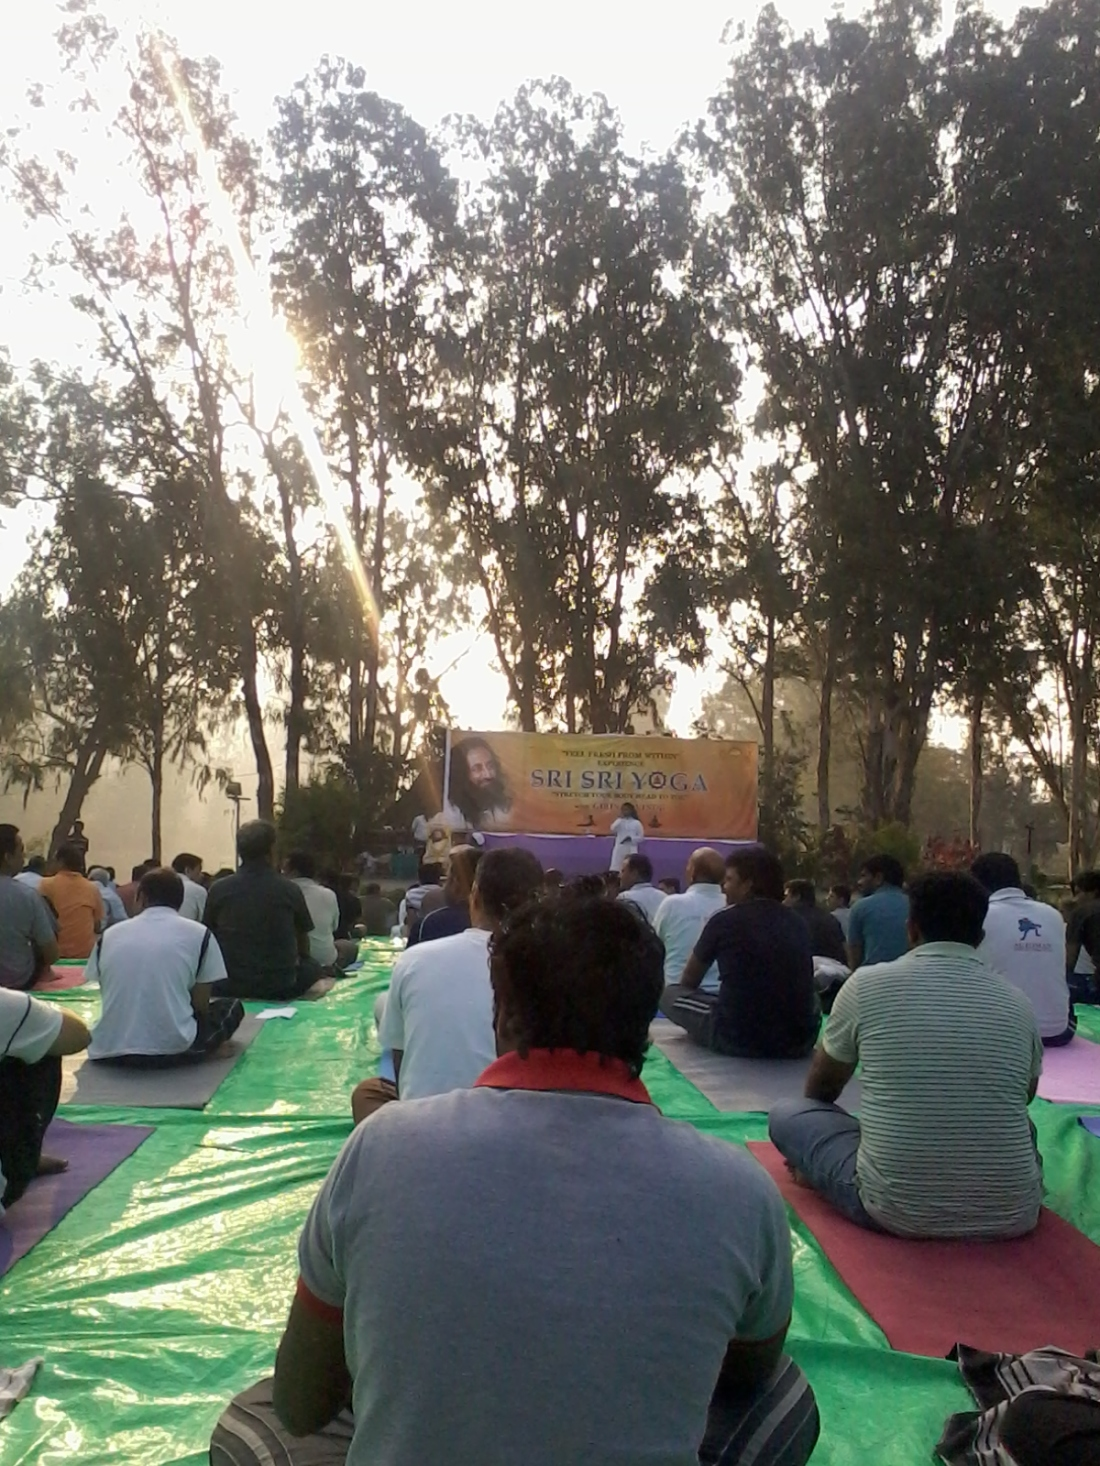 Sri Sri Yoga camp at Botanical Gardens, Hyderabad.